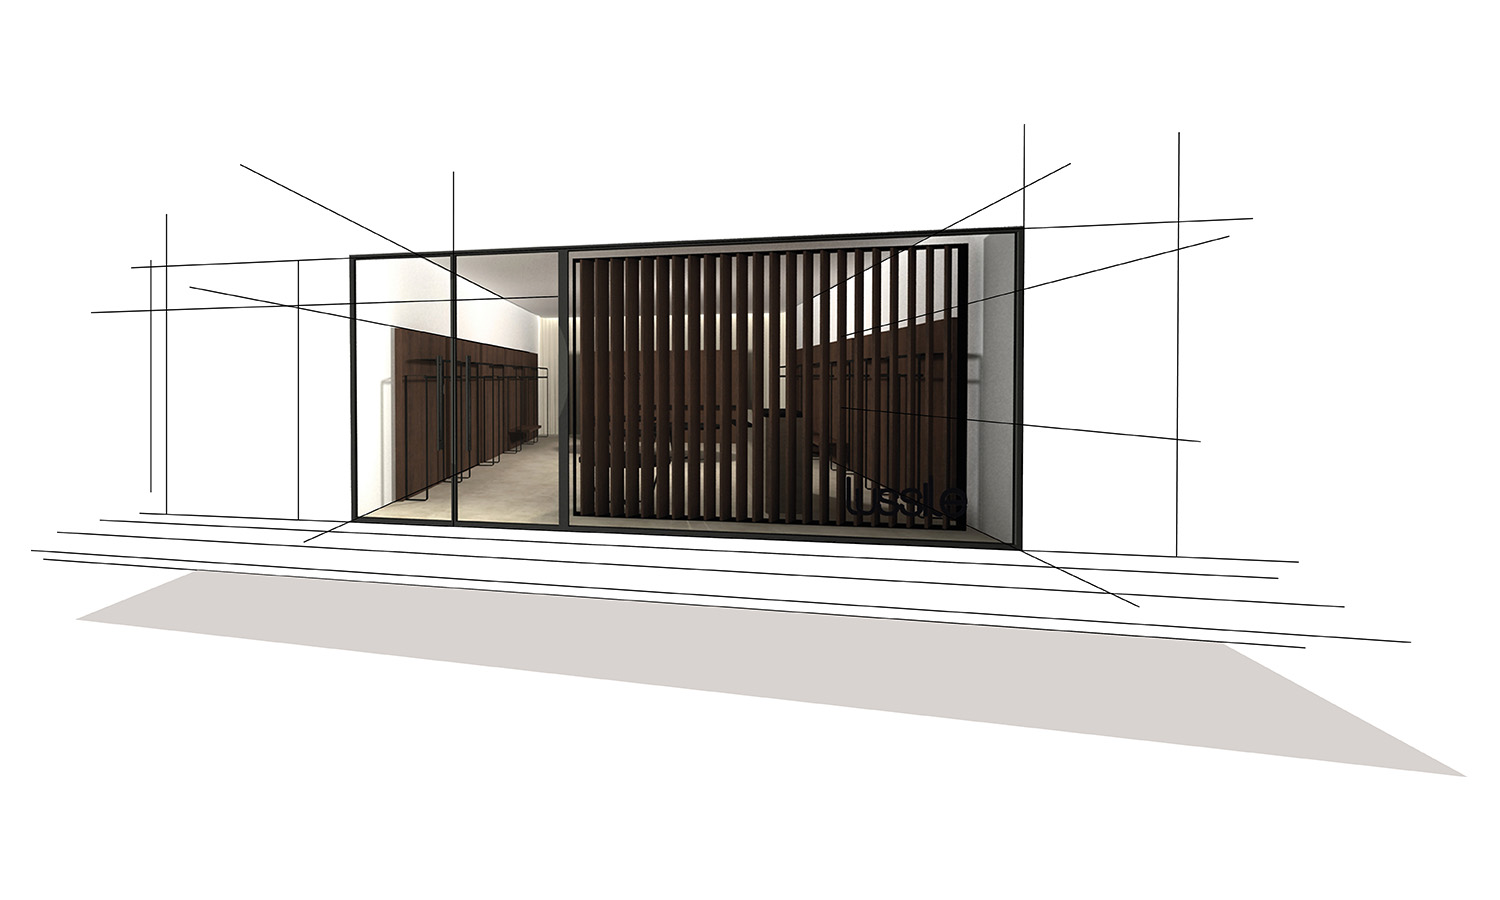 i-_0026_perspective lussile facade.jpg